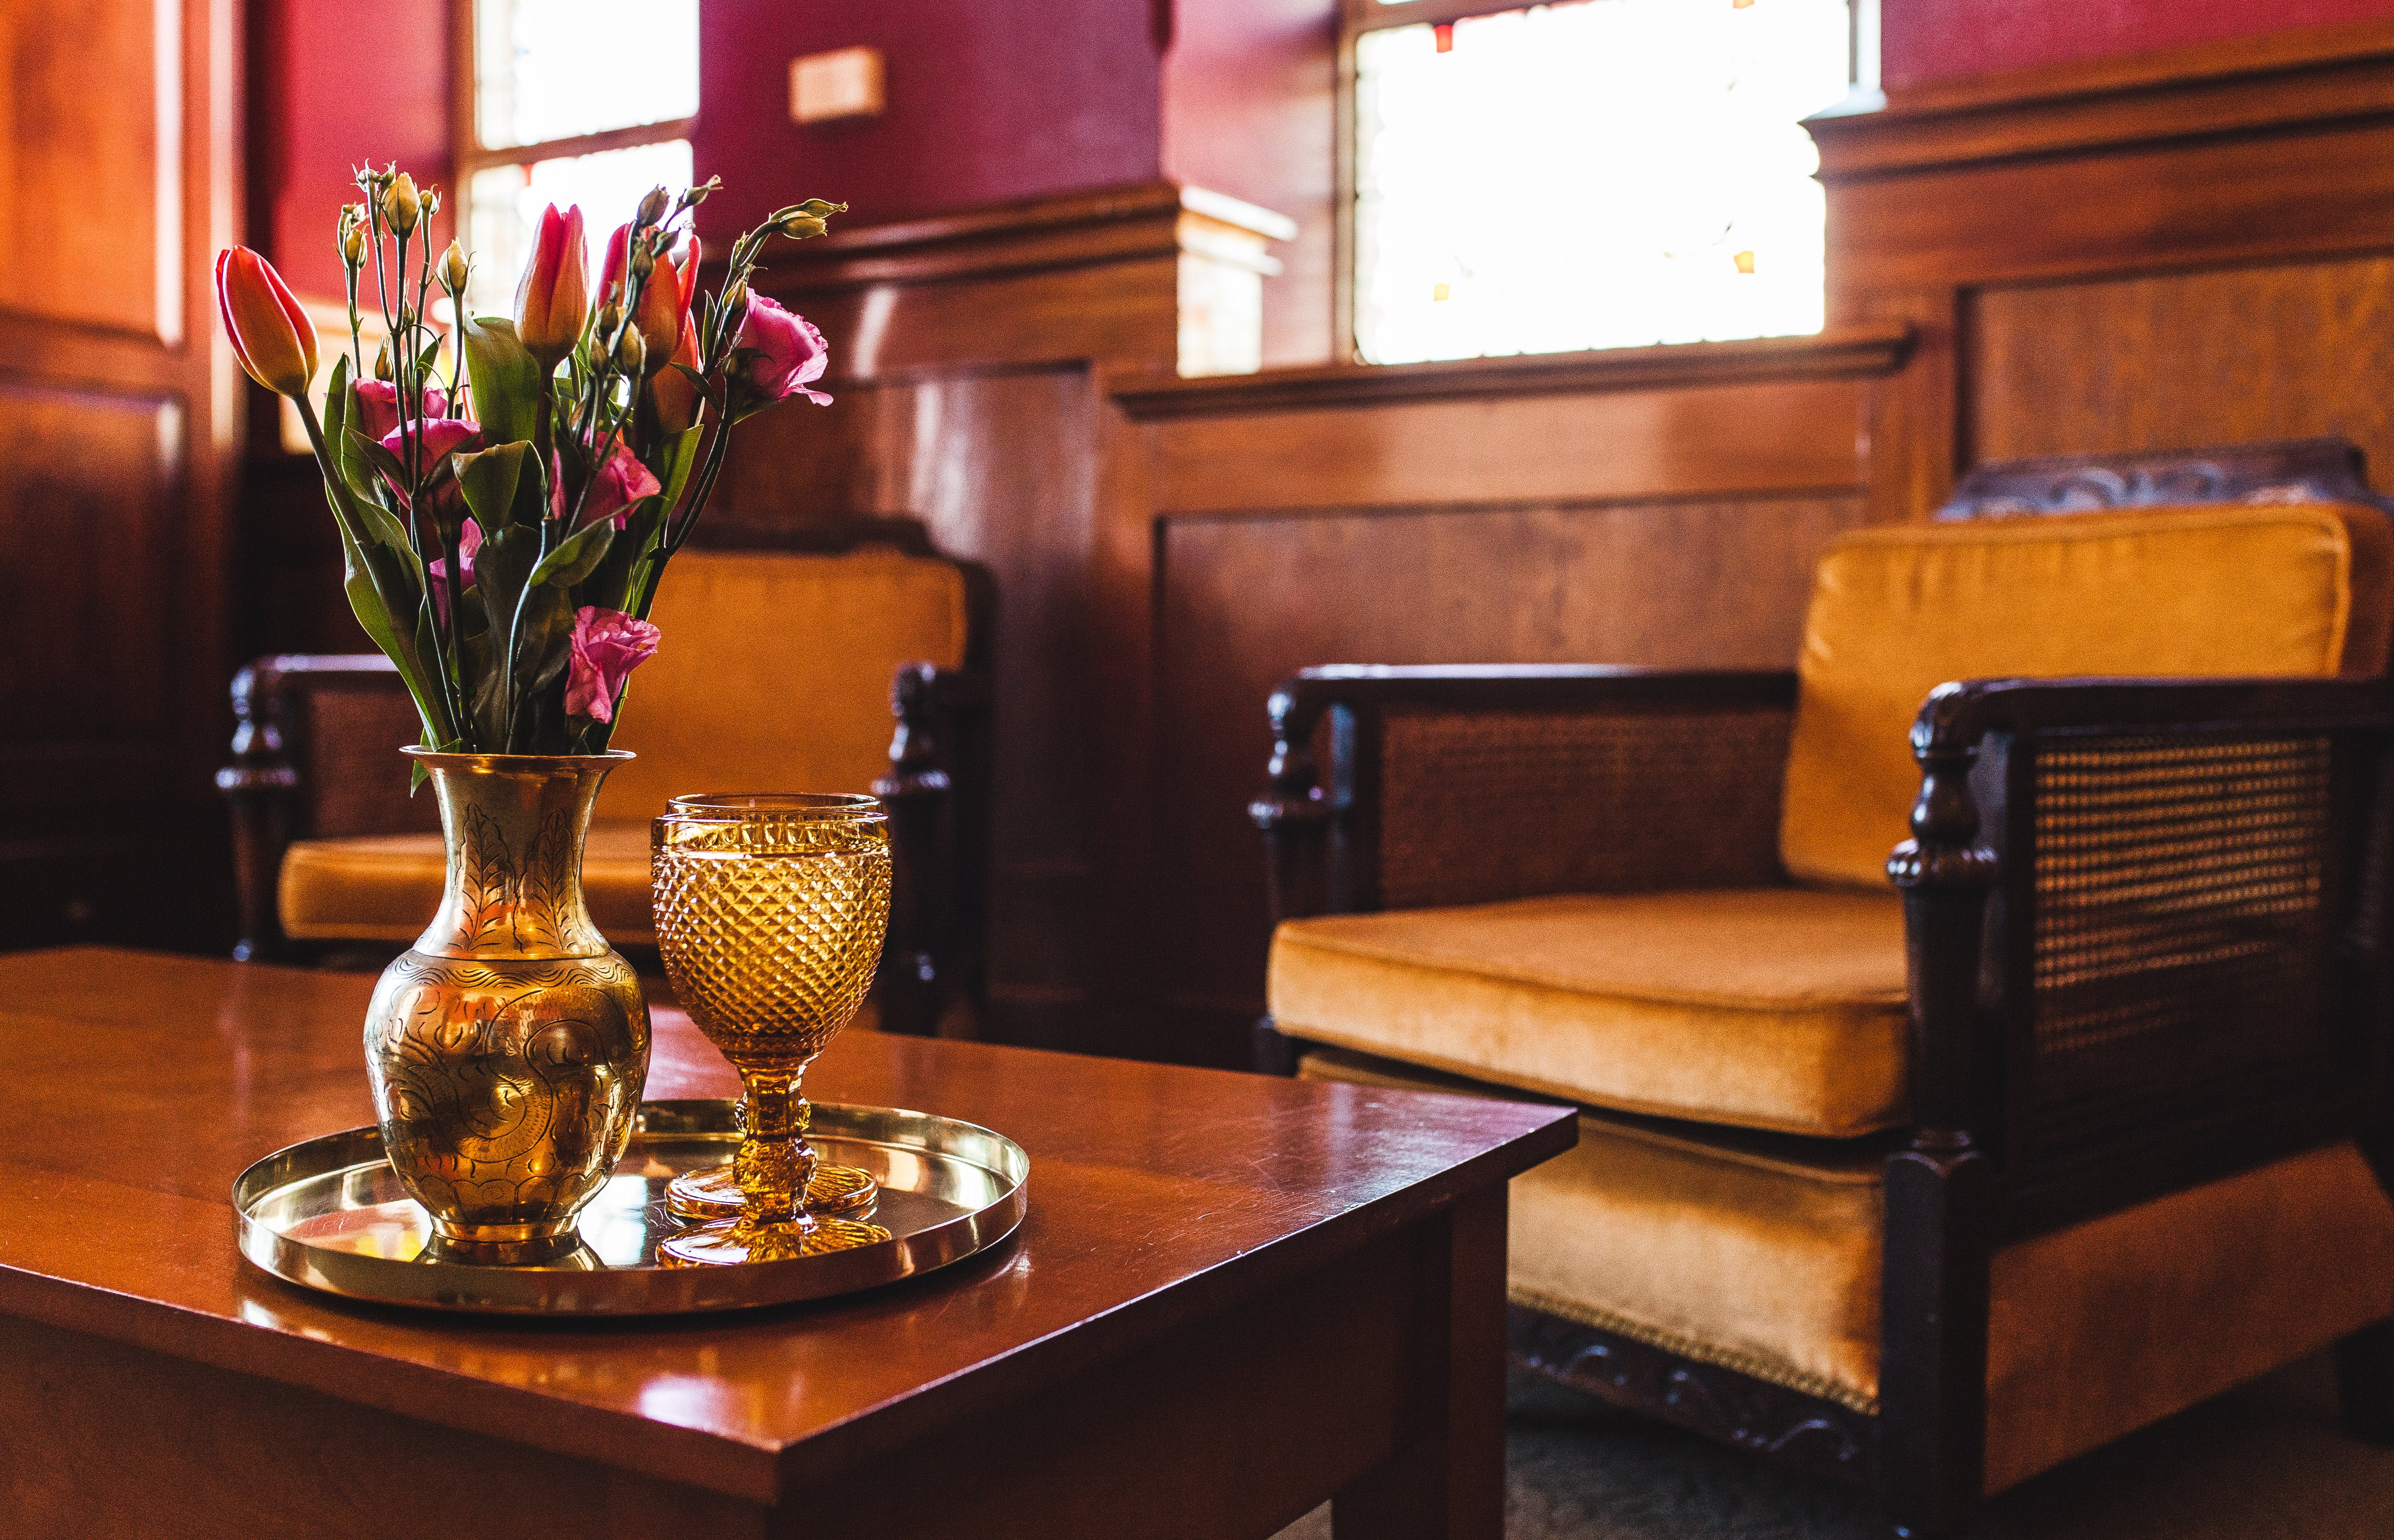 The Brothers Boutique Hotel Heritage building Brothers Hotel Dunedin New Zealand